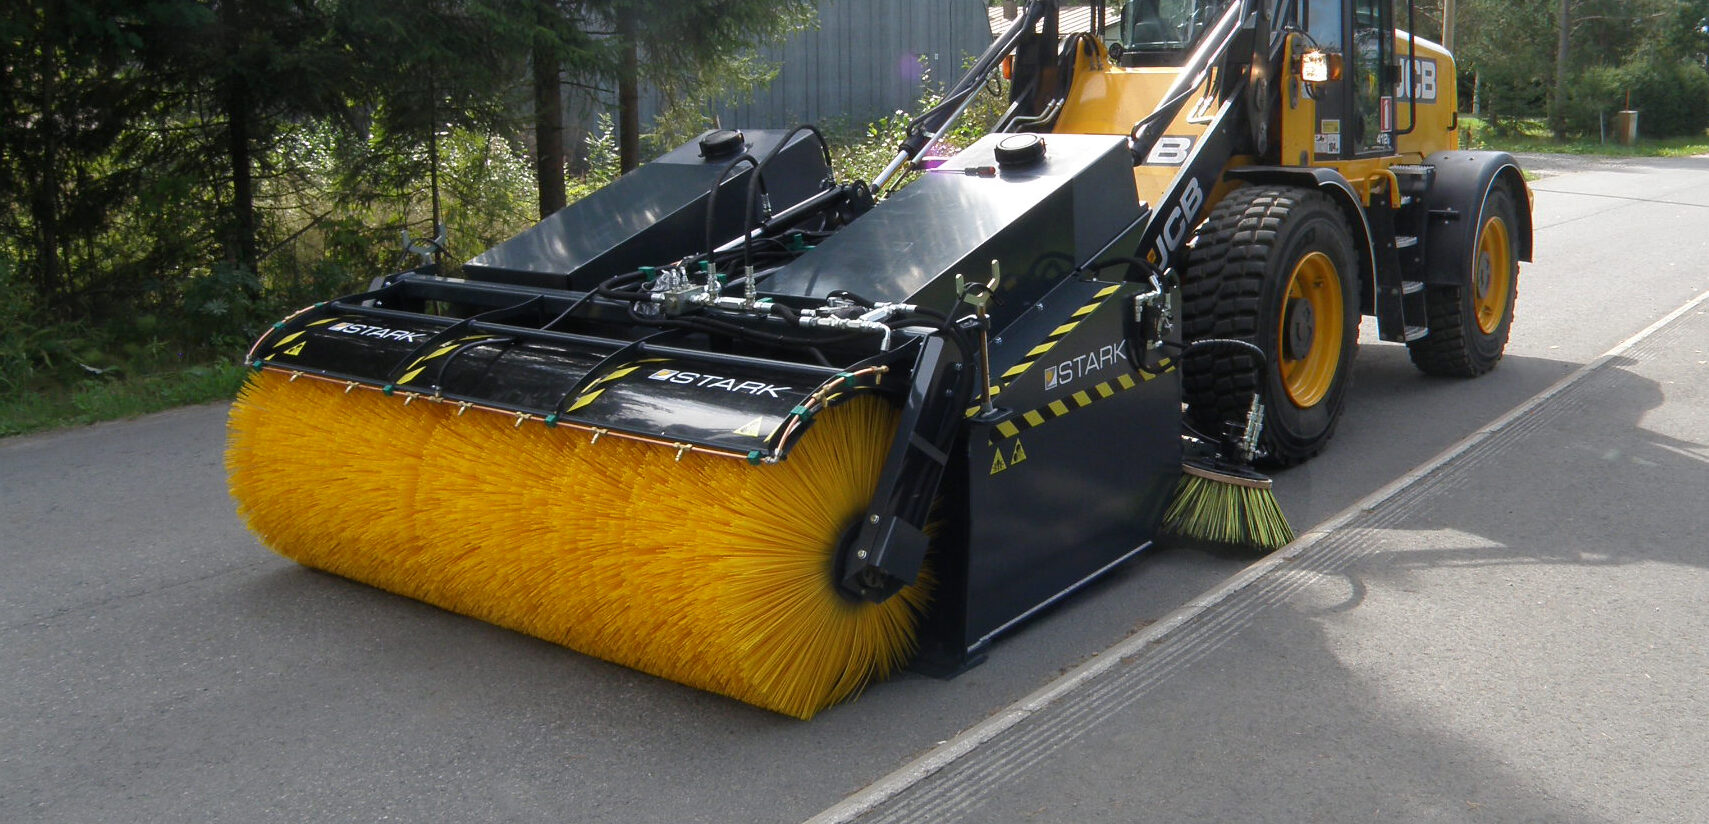 COLLECTING SWEEPING